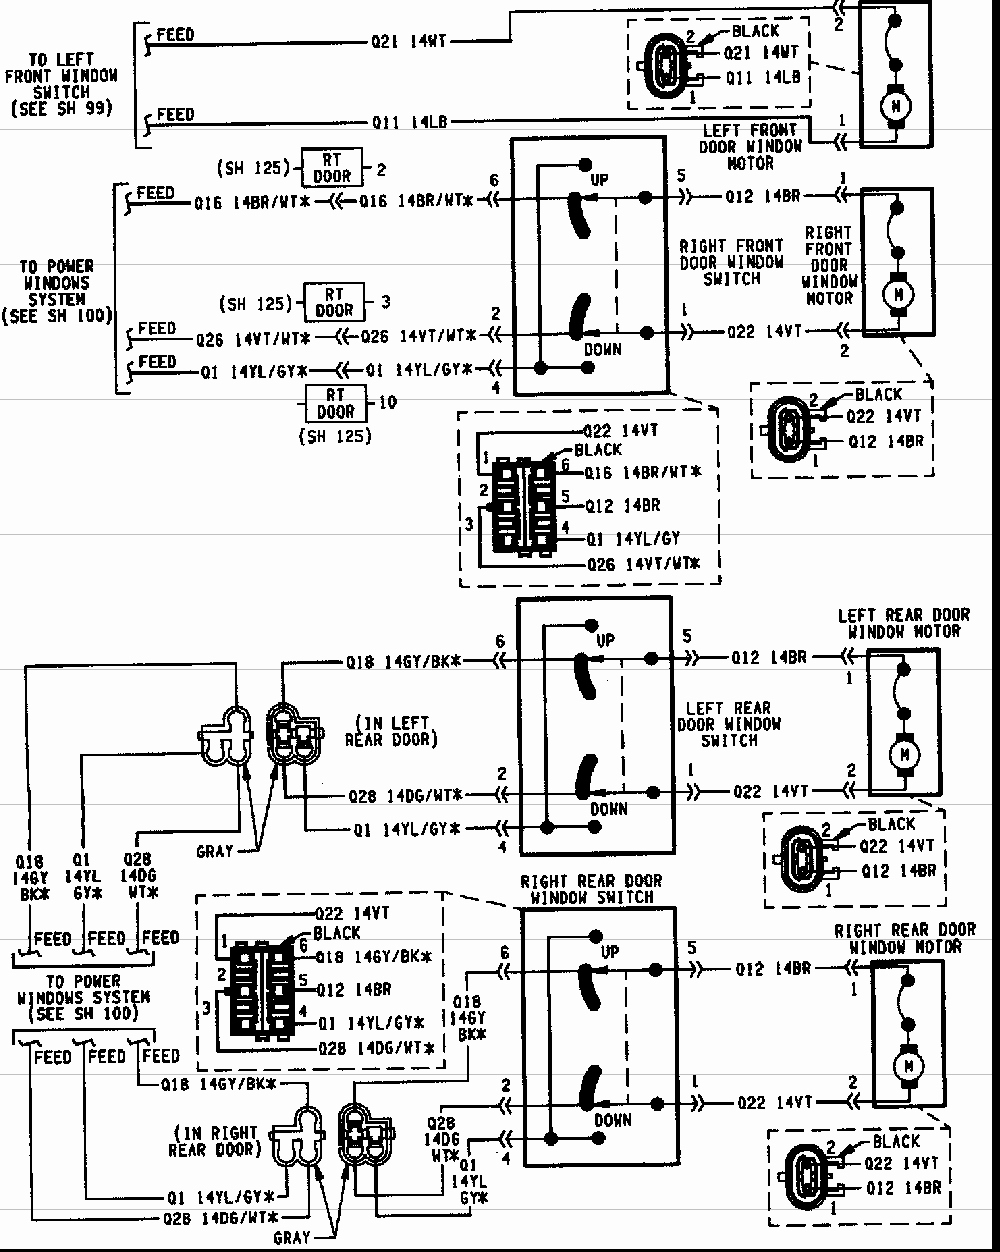 2002 jeep grand cherokee laredo stereo wiring diagram